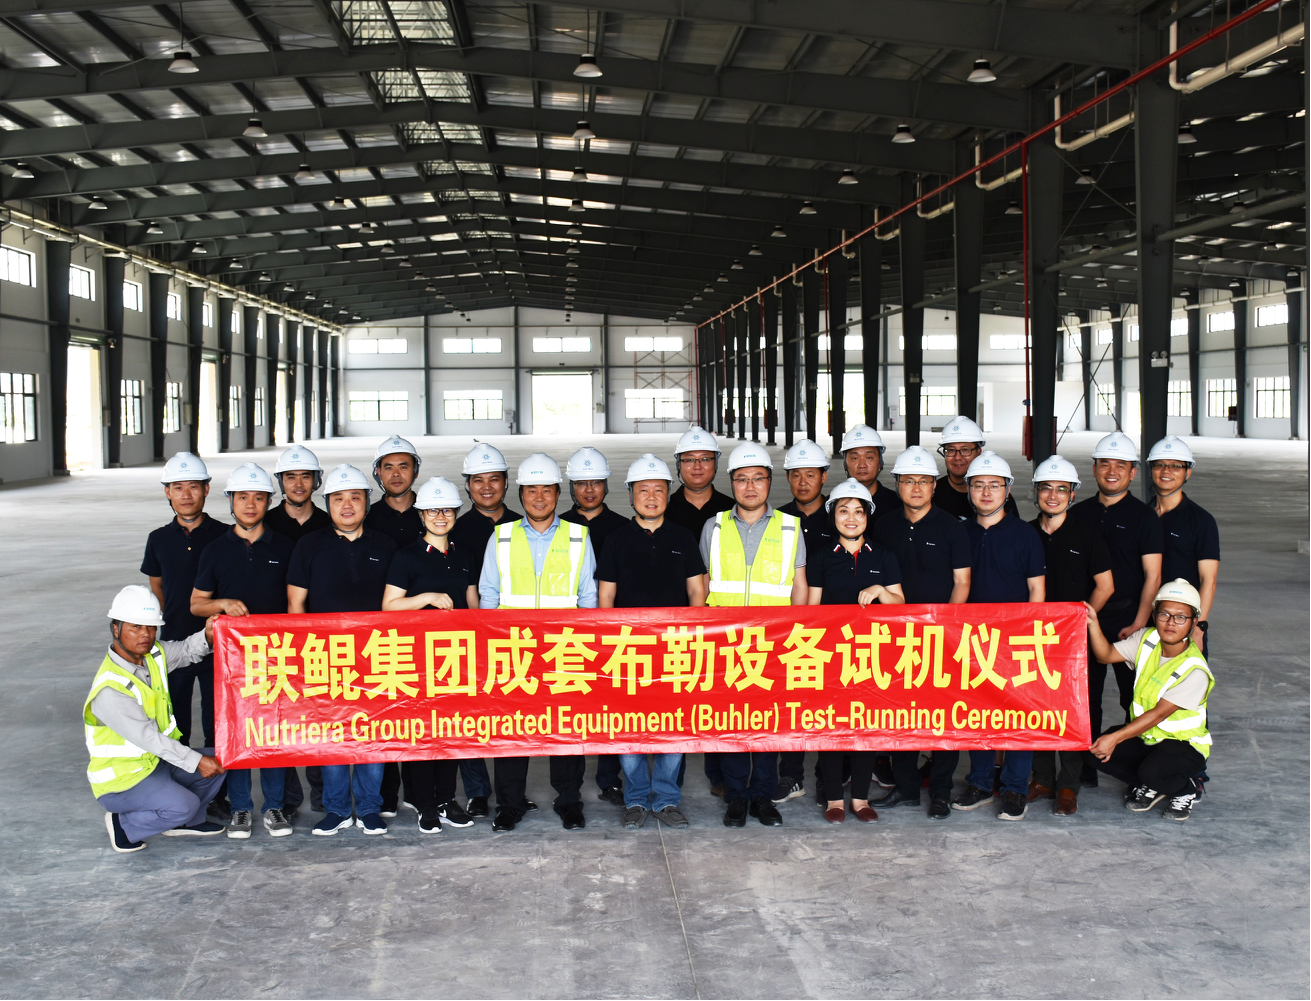 ​Integrated premix equipment (Buhler) test-running ceremony in Zhuhai Nutriera Industry Park was held successfully